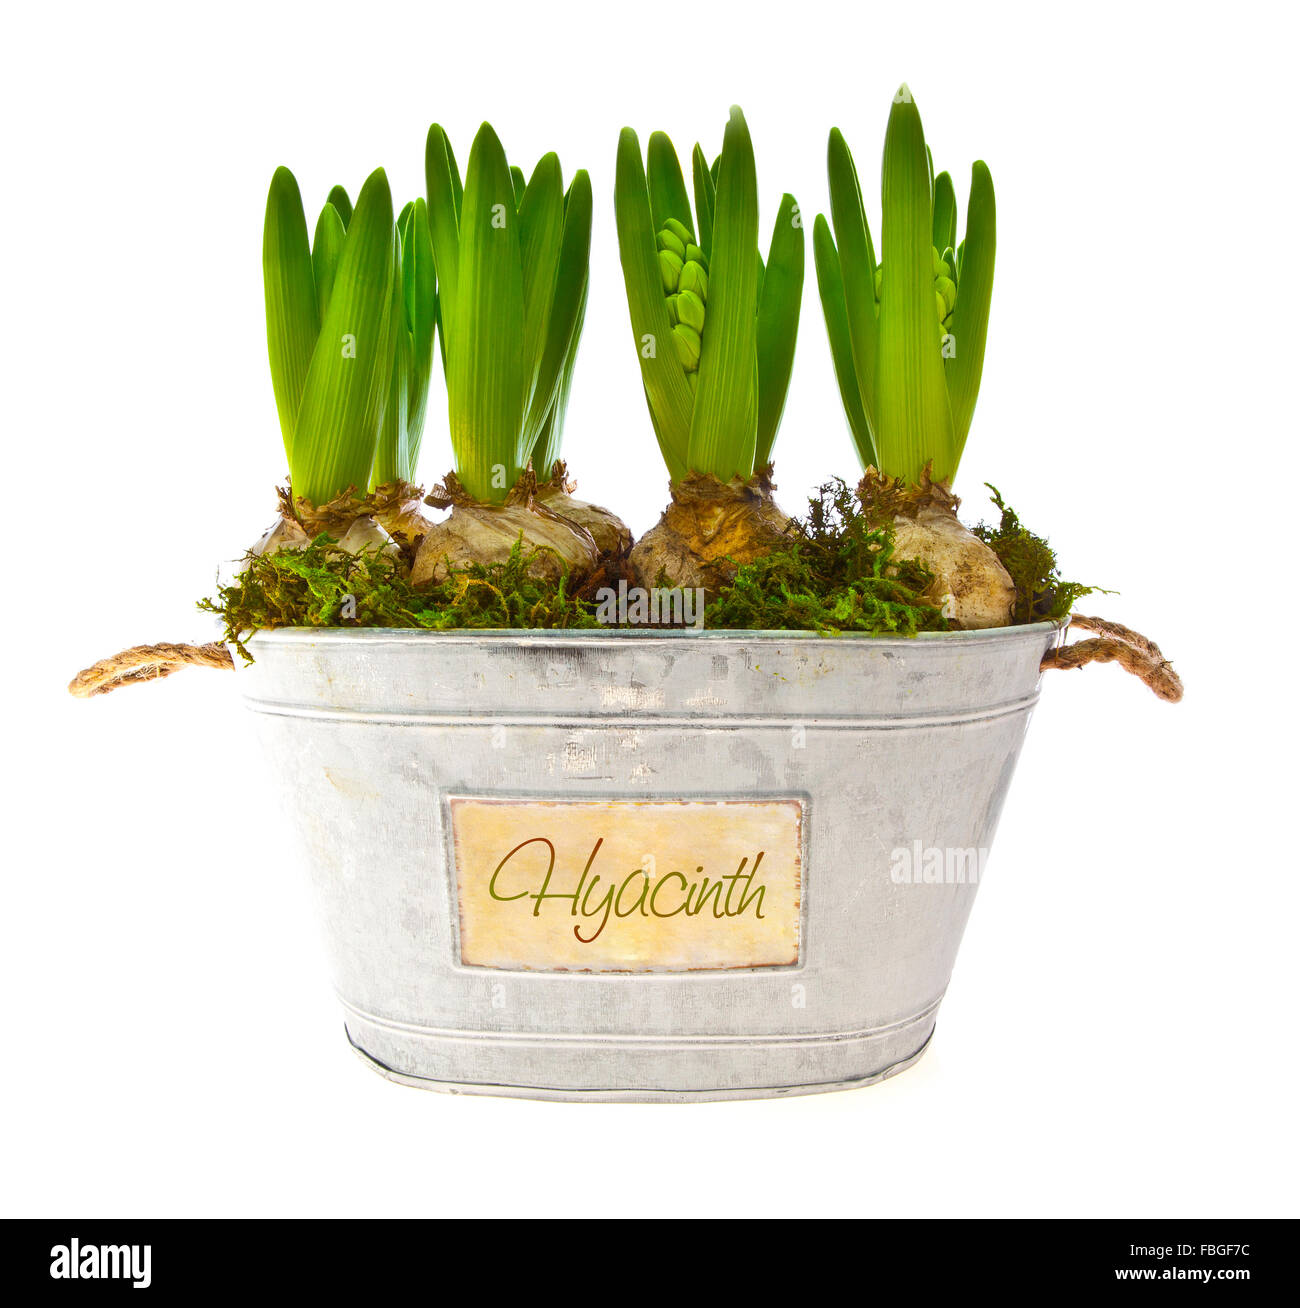 Growing hyacinth flower bulbs in pot isolated on white background Stock Photo